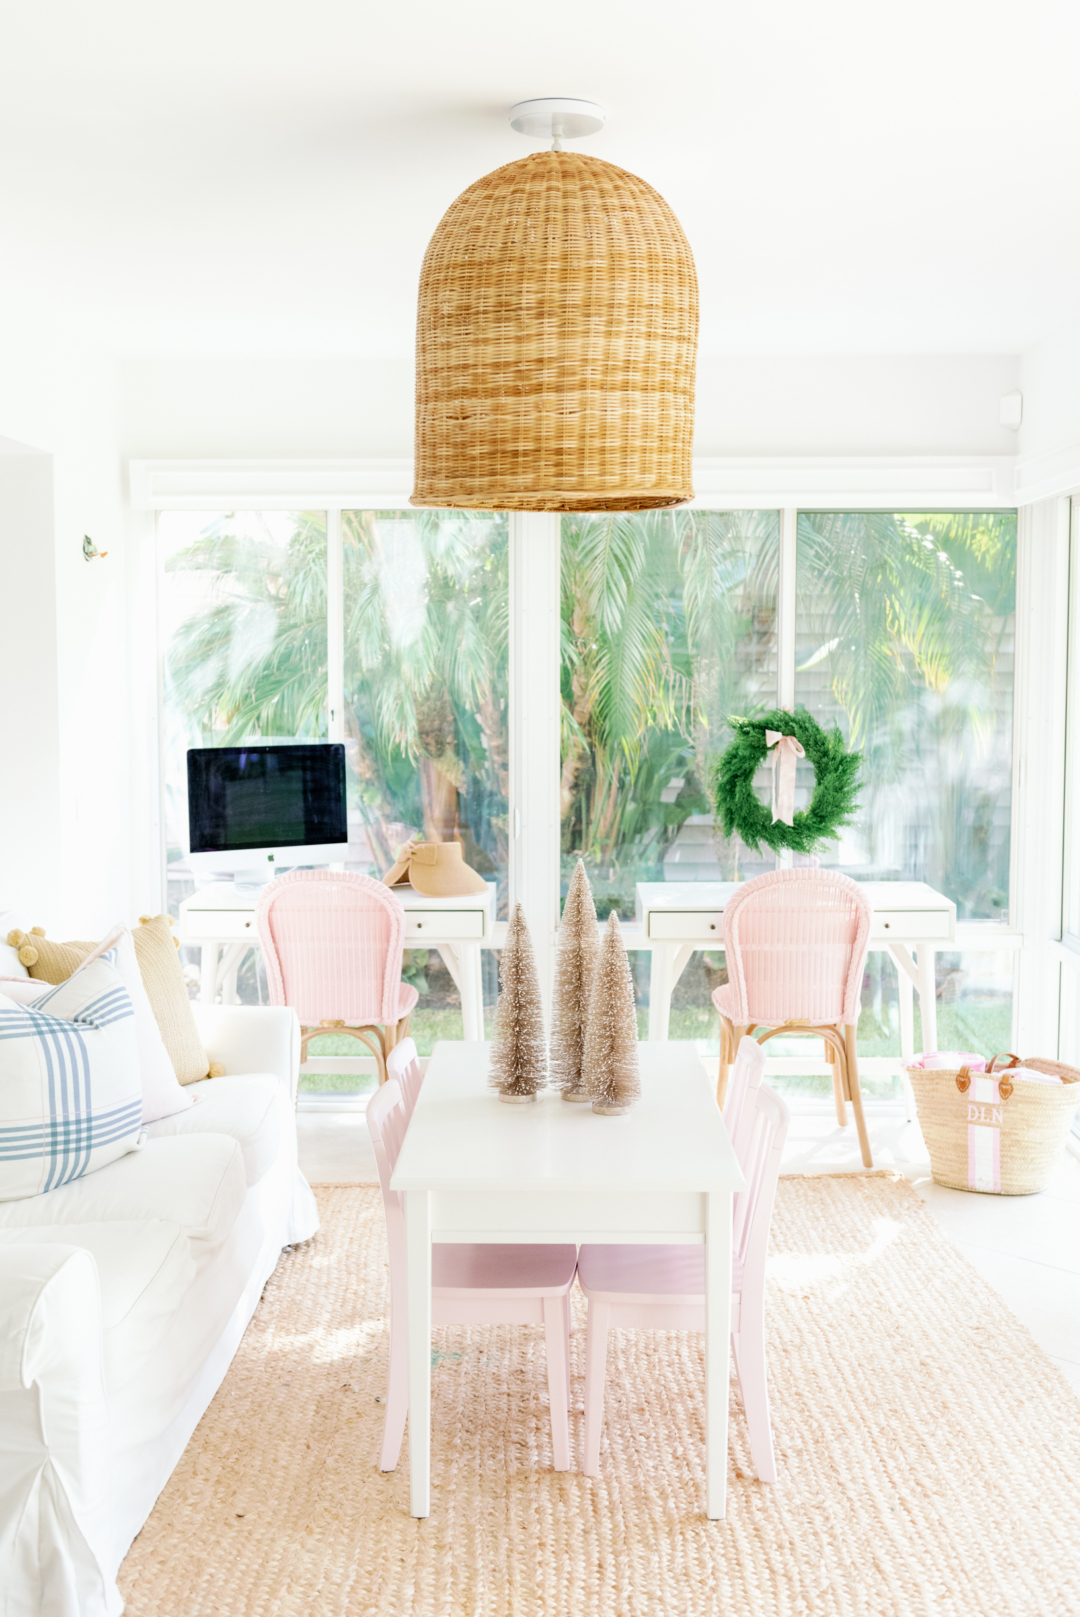 Home: Holiday Beach House with Serena and Lily and Palm Beach Lately